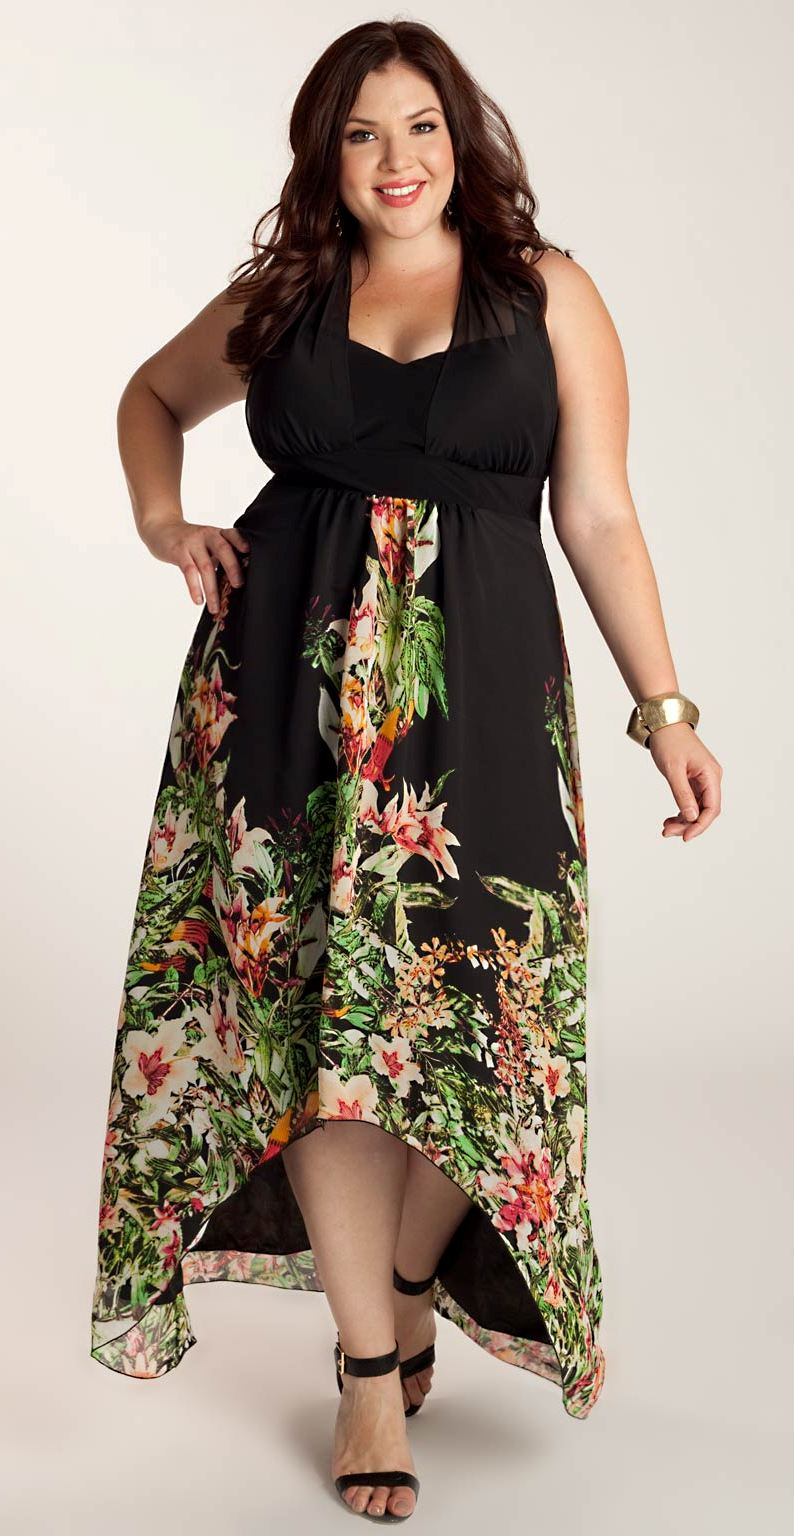 plus-size-casual-dresses-for-women-plus-size-maxi-dresses-with-sleeves-dresses-gallery